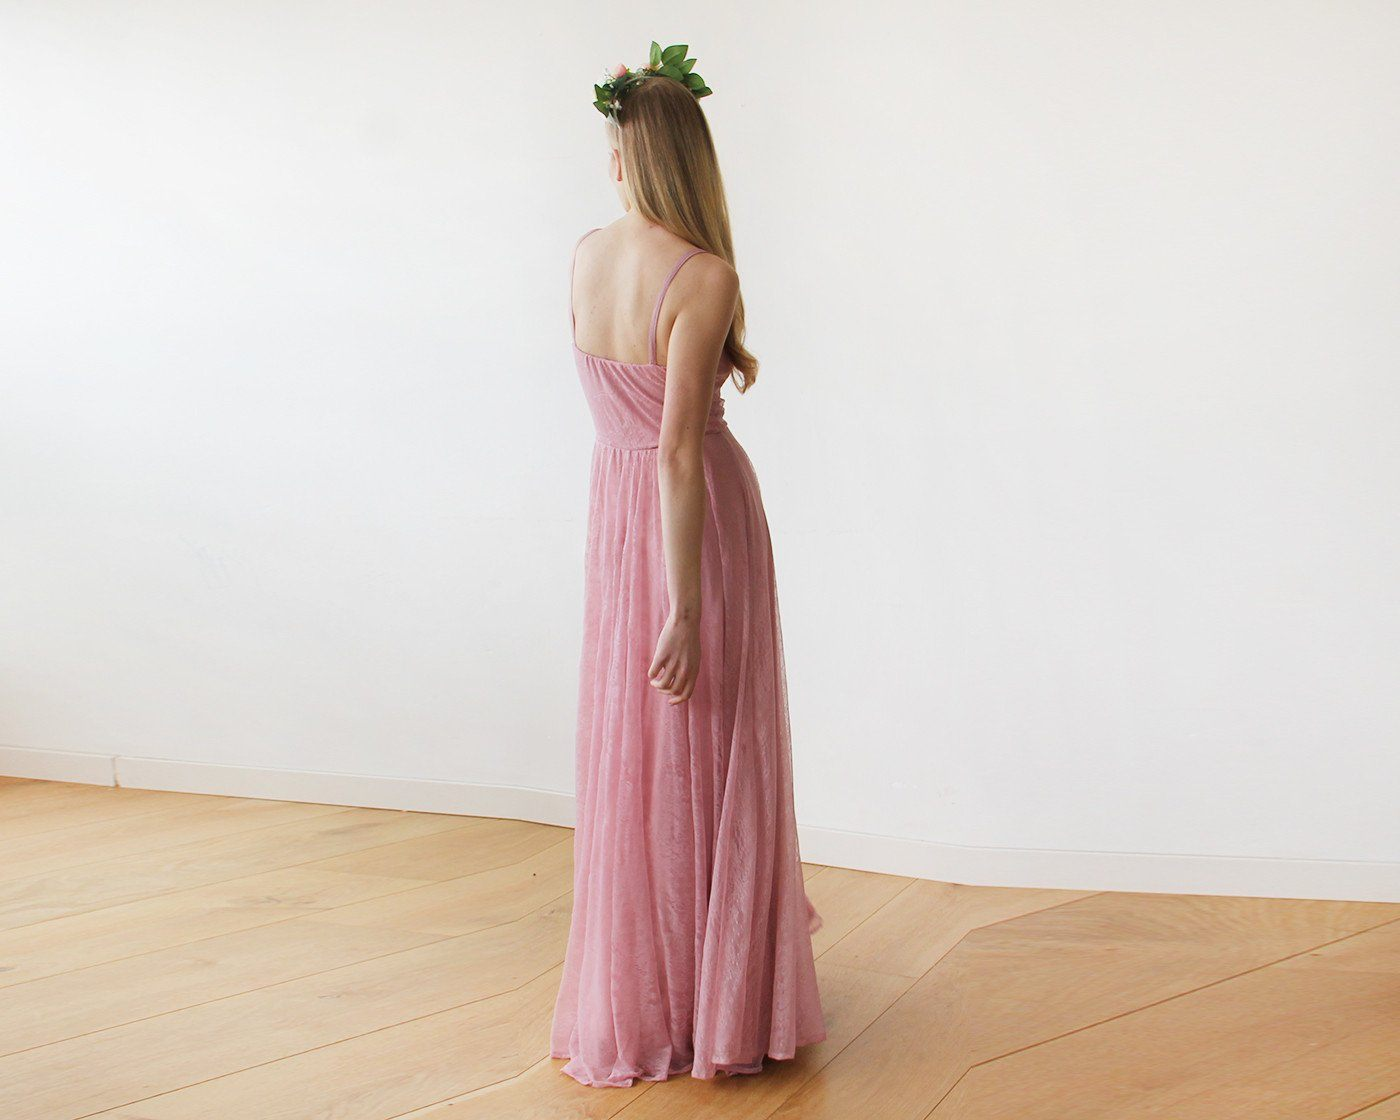 Lace Rose-Pink Sweetheart Neckline Maxi Dress SALE 1080